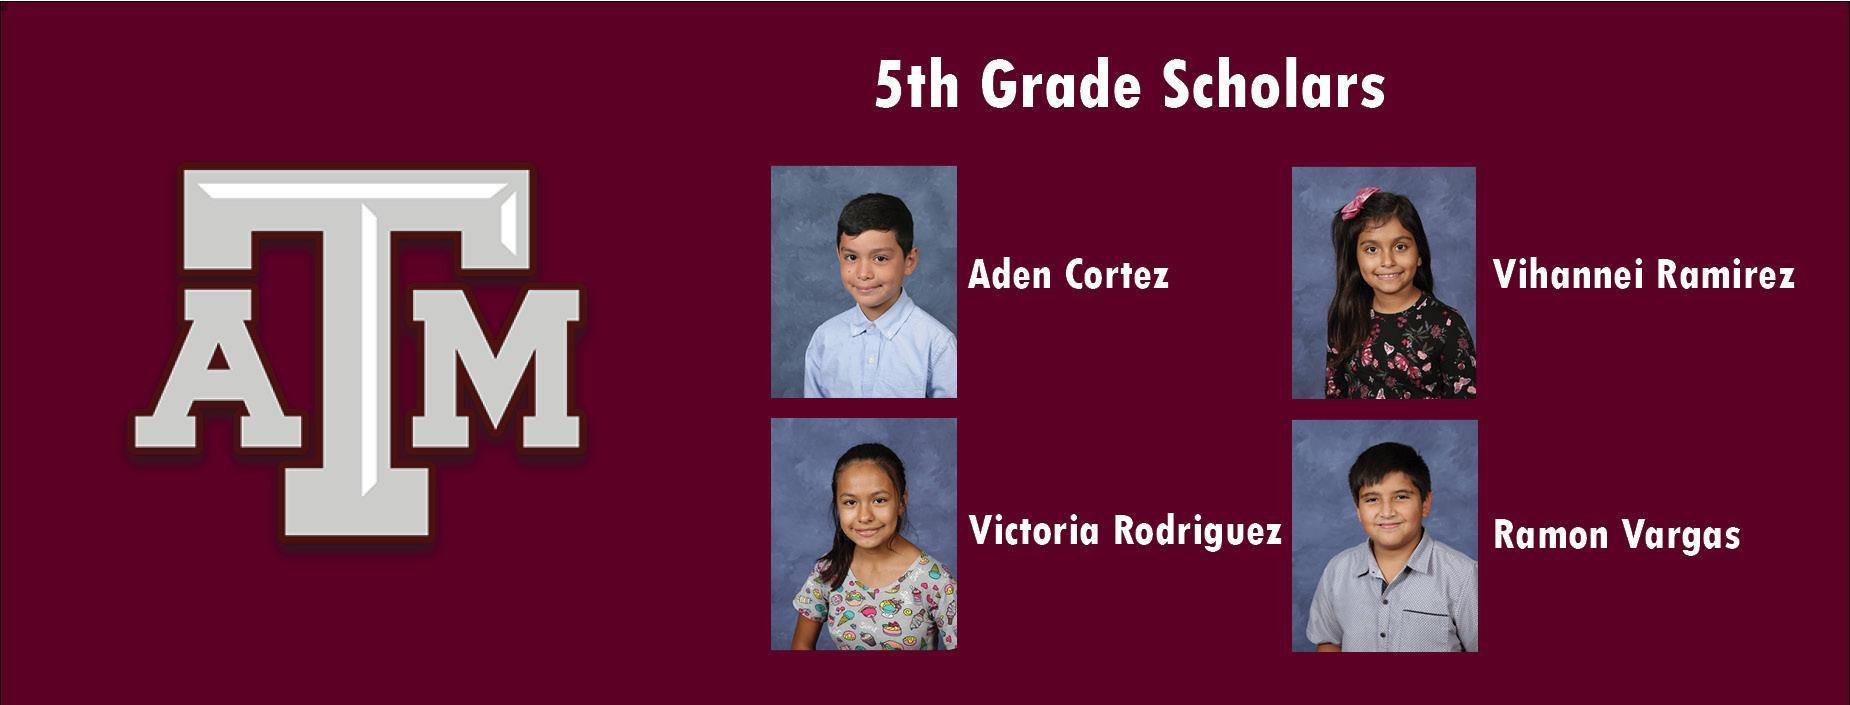 picture of 5th grade scholars